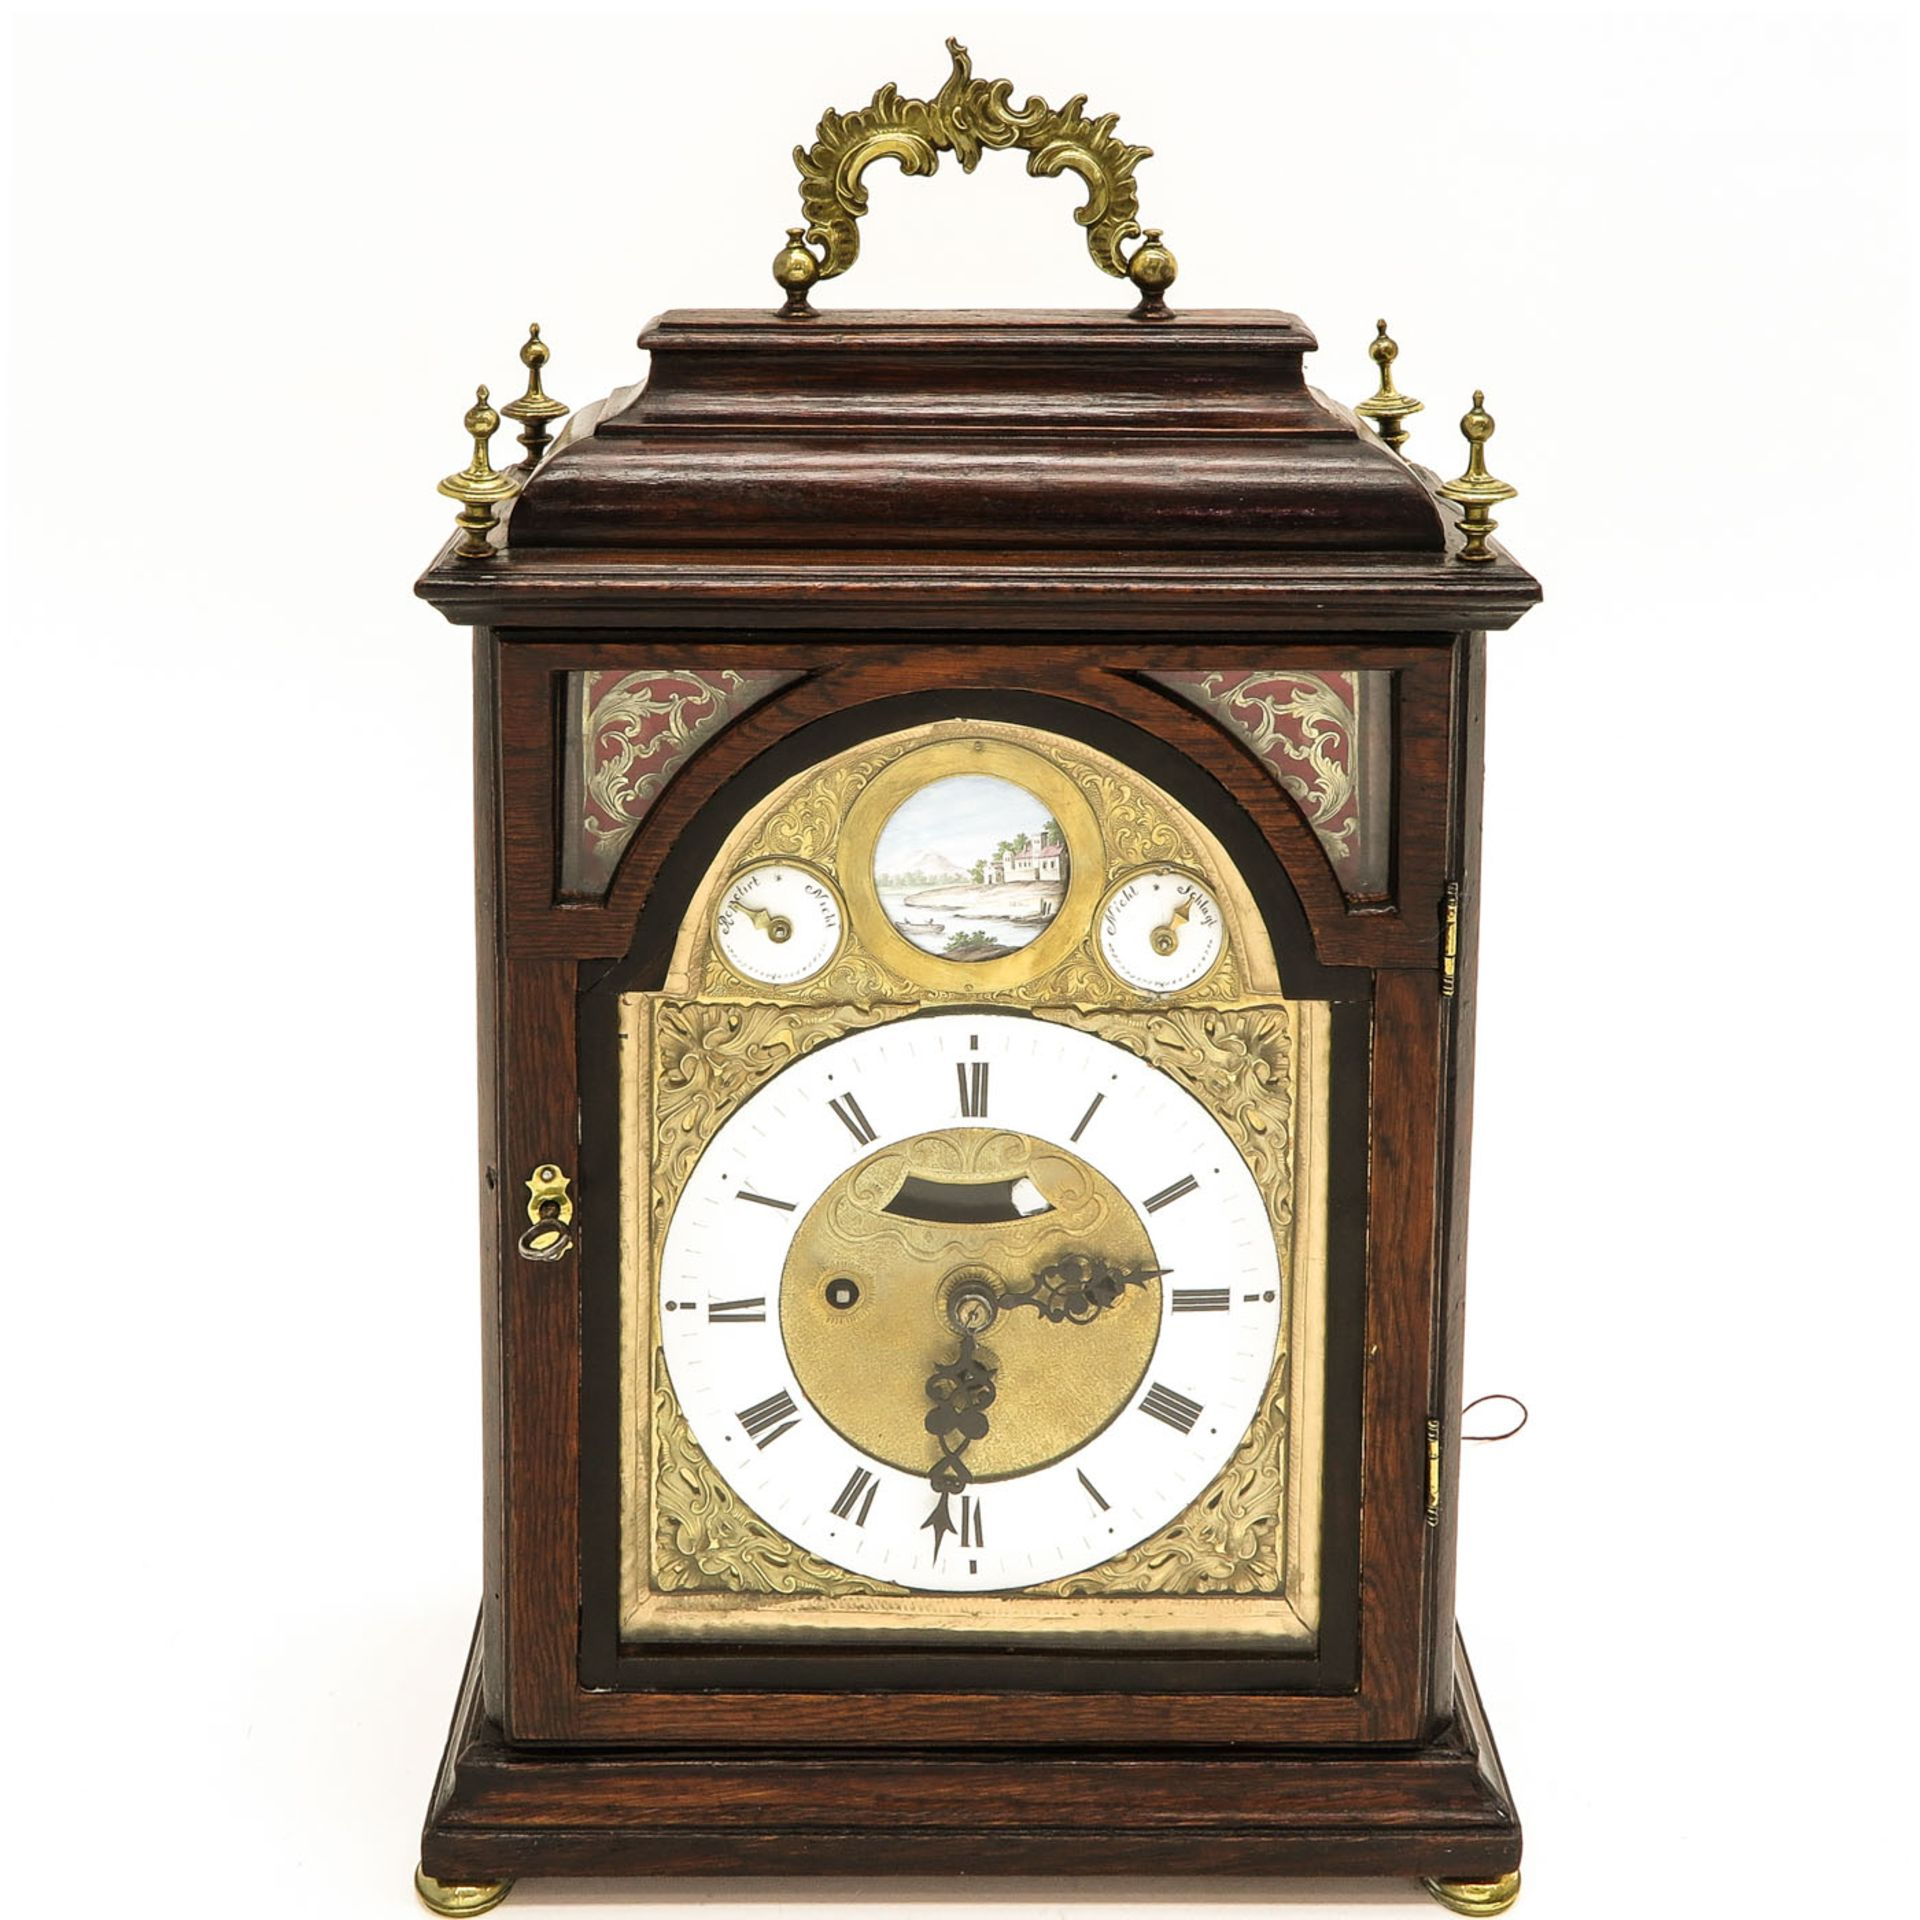 Los 1130 - A Viennese Table clock